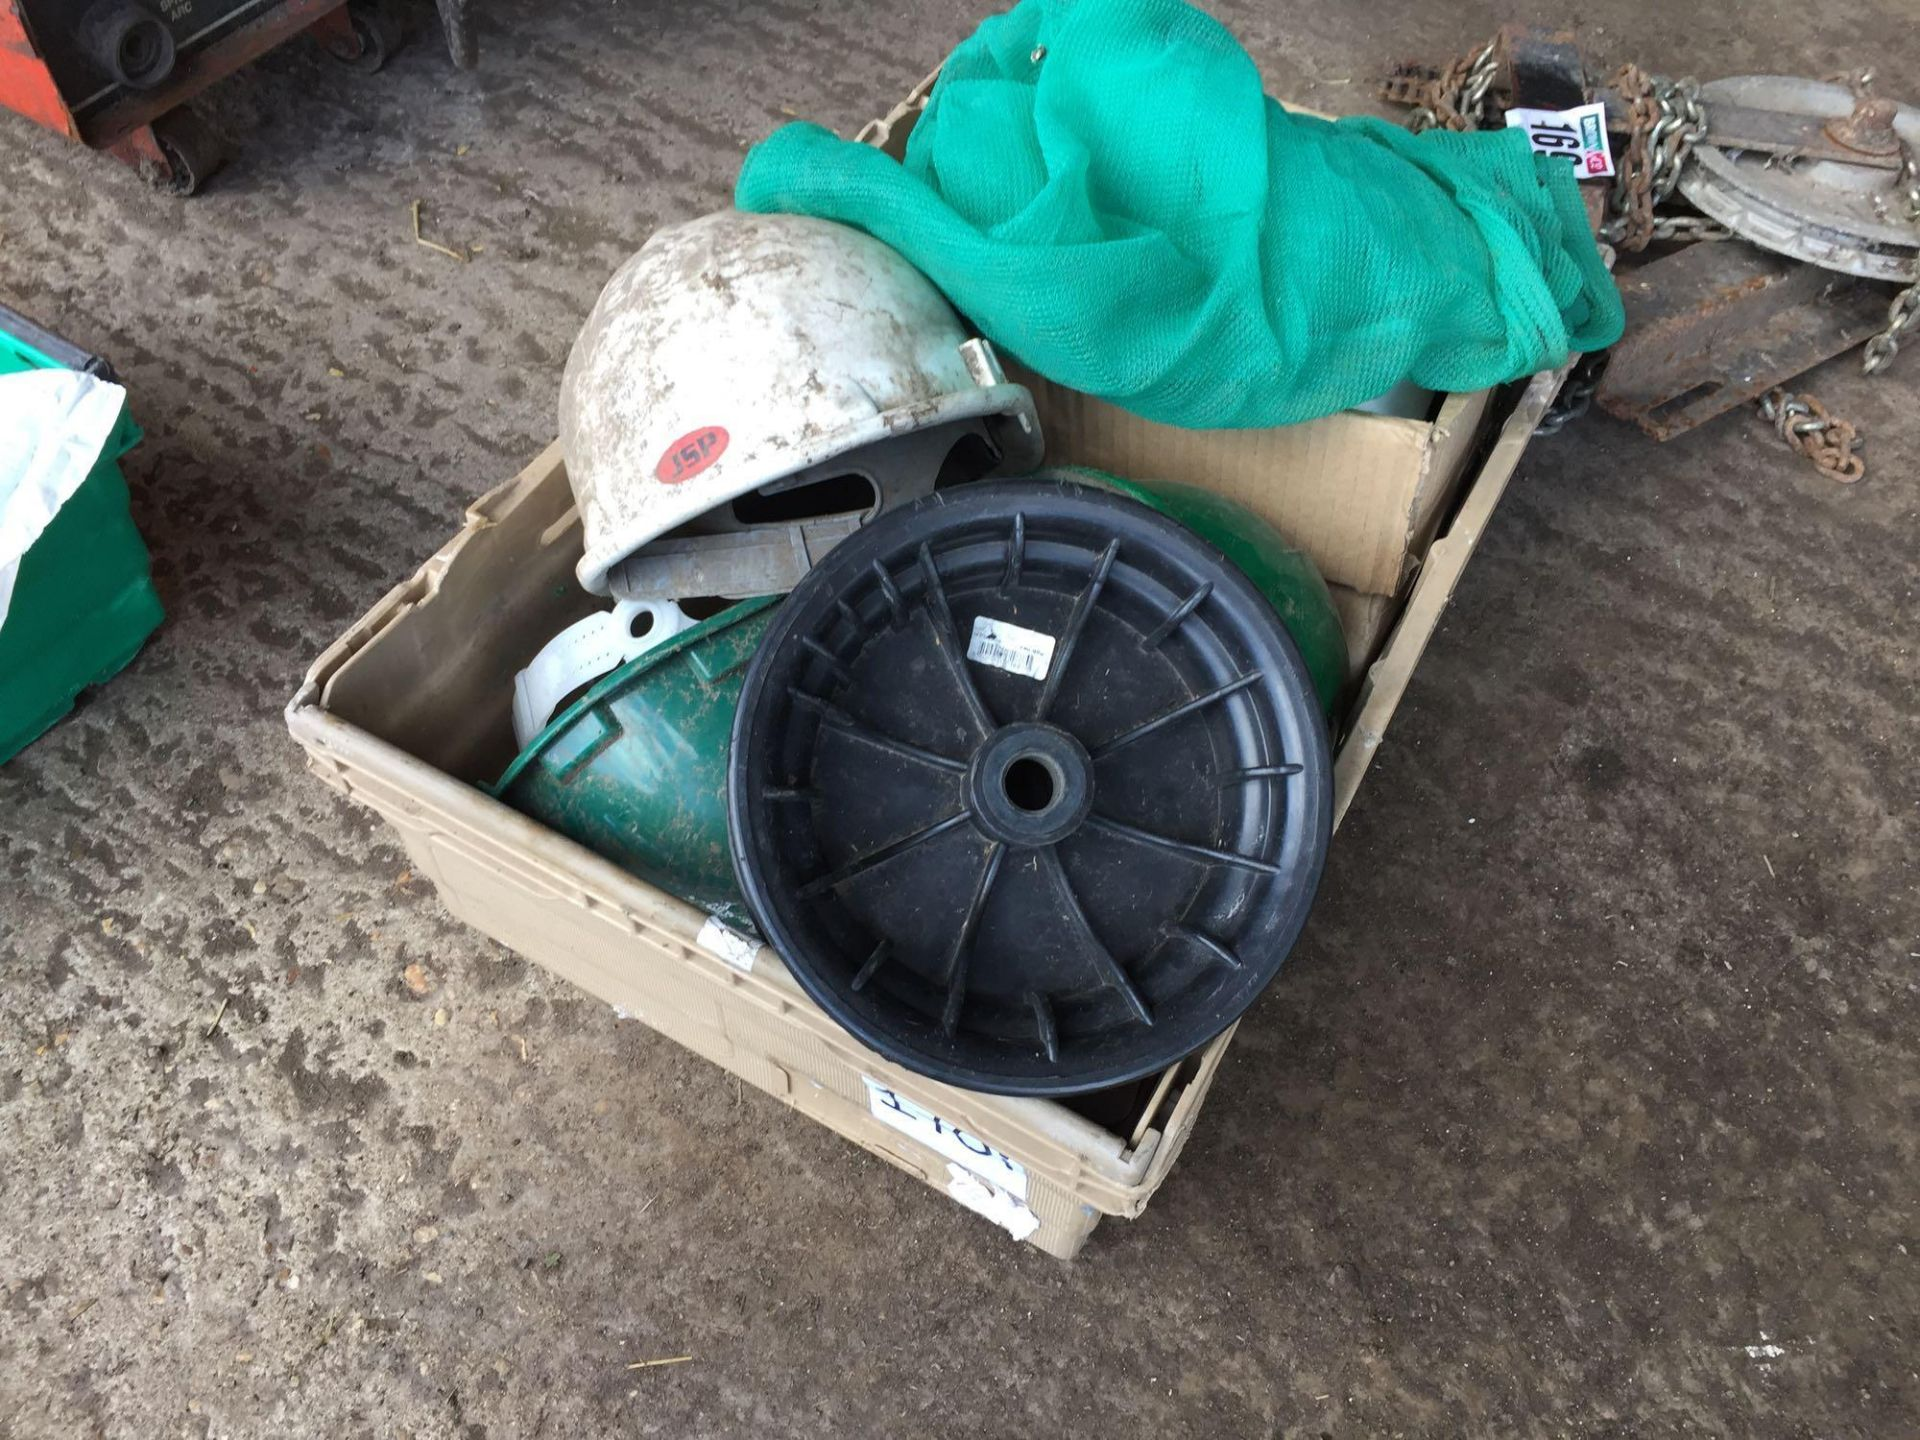 Lot 170i - Quantity safety helmets